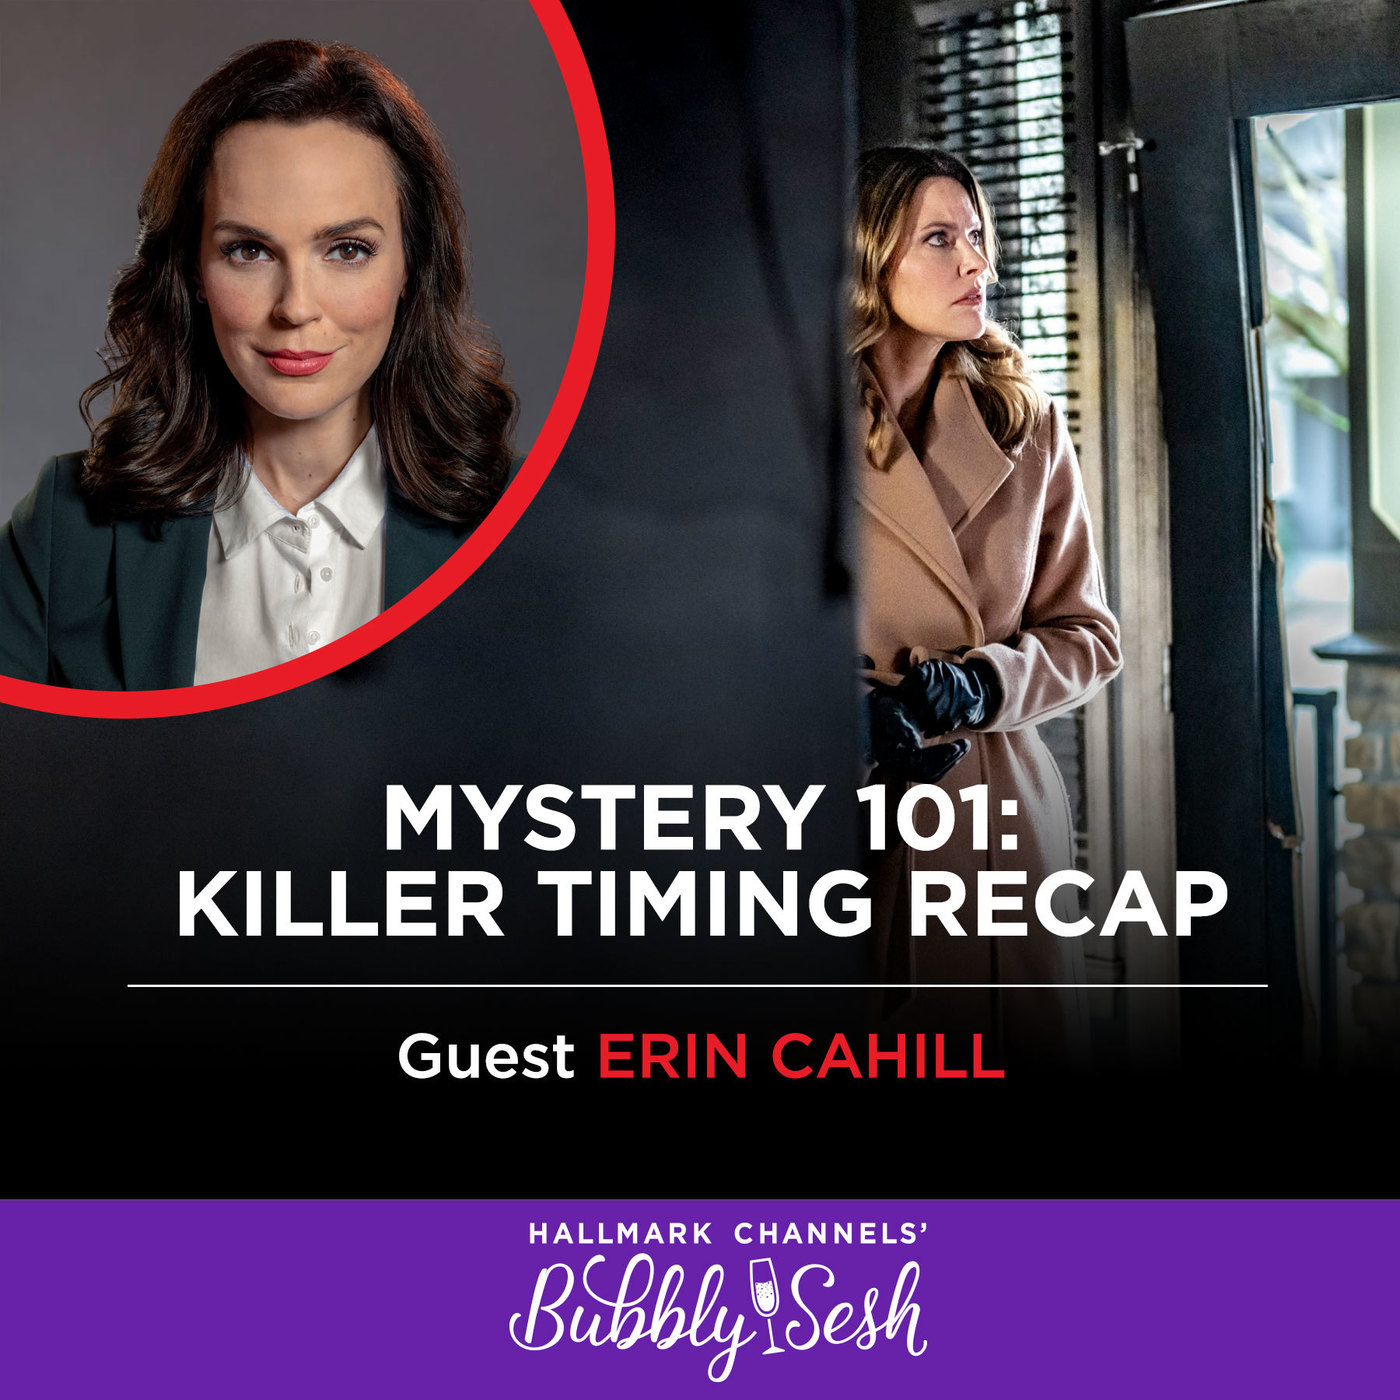 Mystery 101: Killer Timing Recap with Guest Erin Cahill